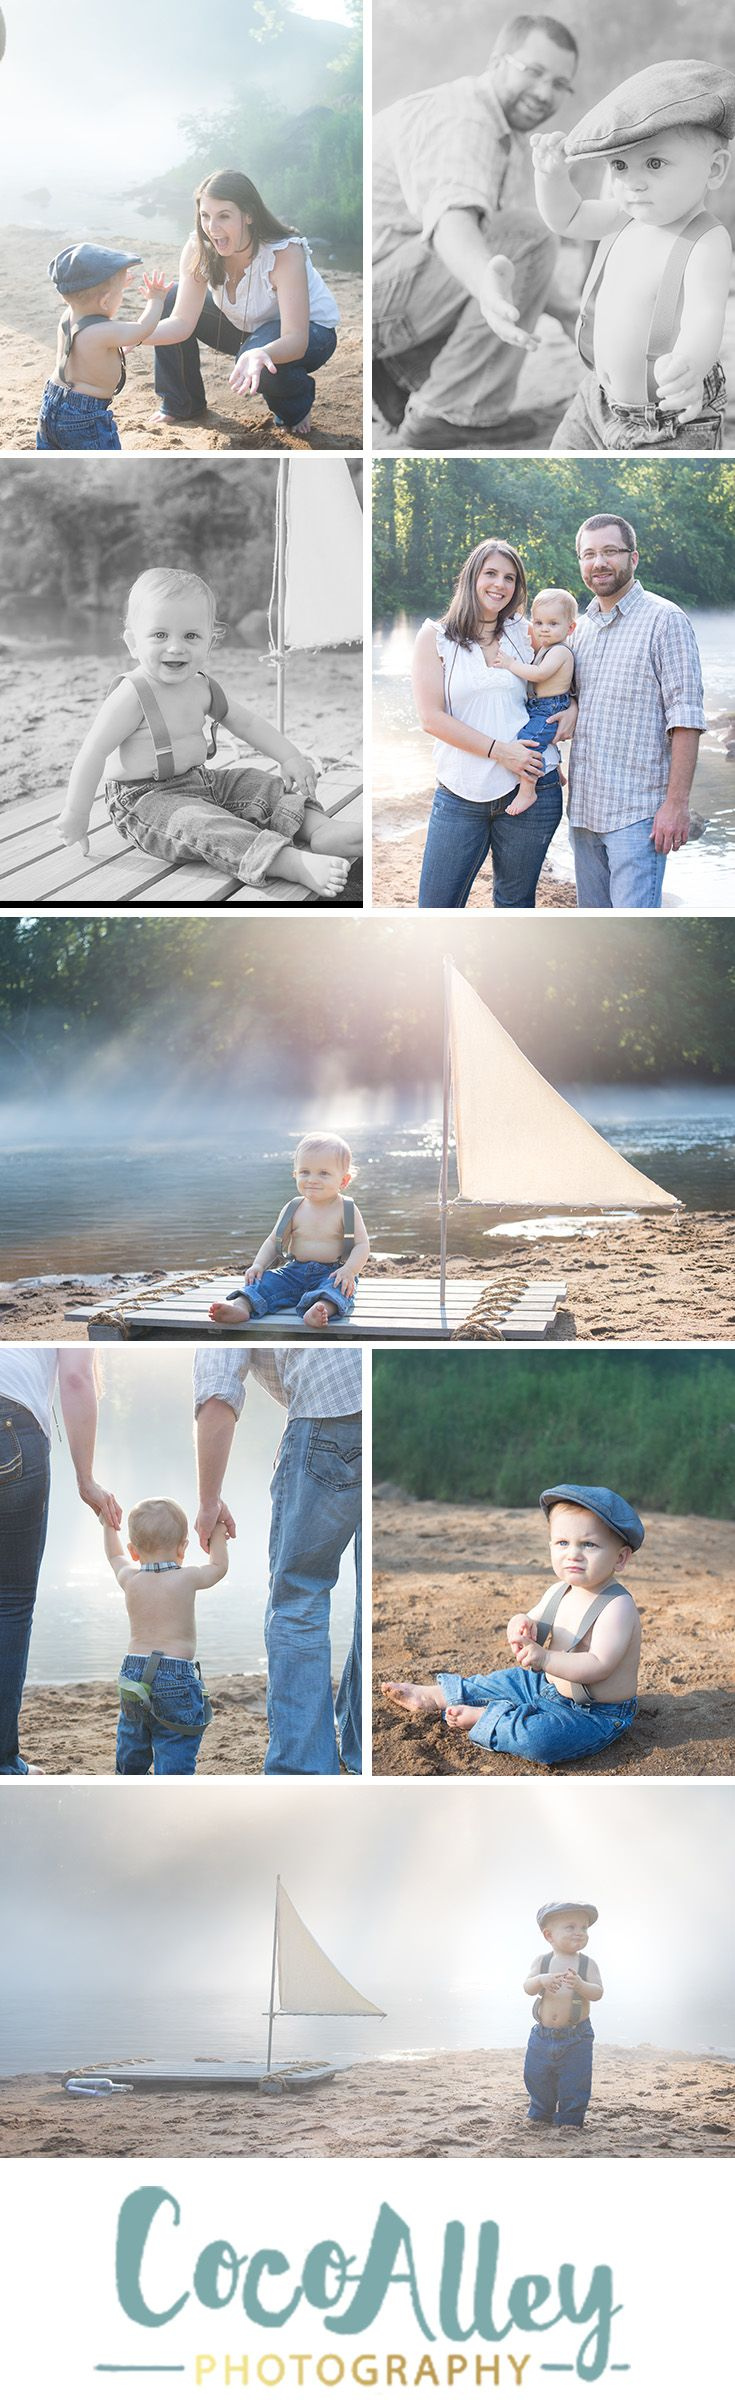 Nautical photo shoot for one year old | one year picture ideas | beautiful light | outdoor family portraits | celebrating1 year old | lakeside